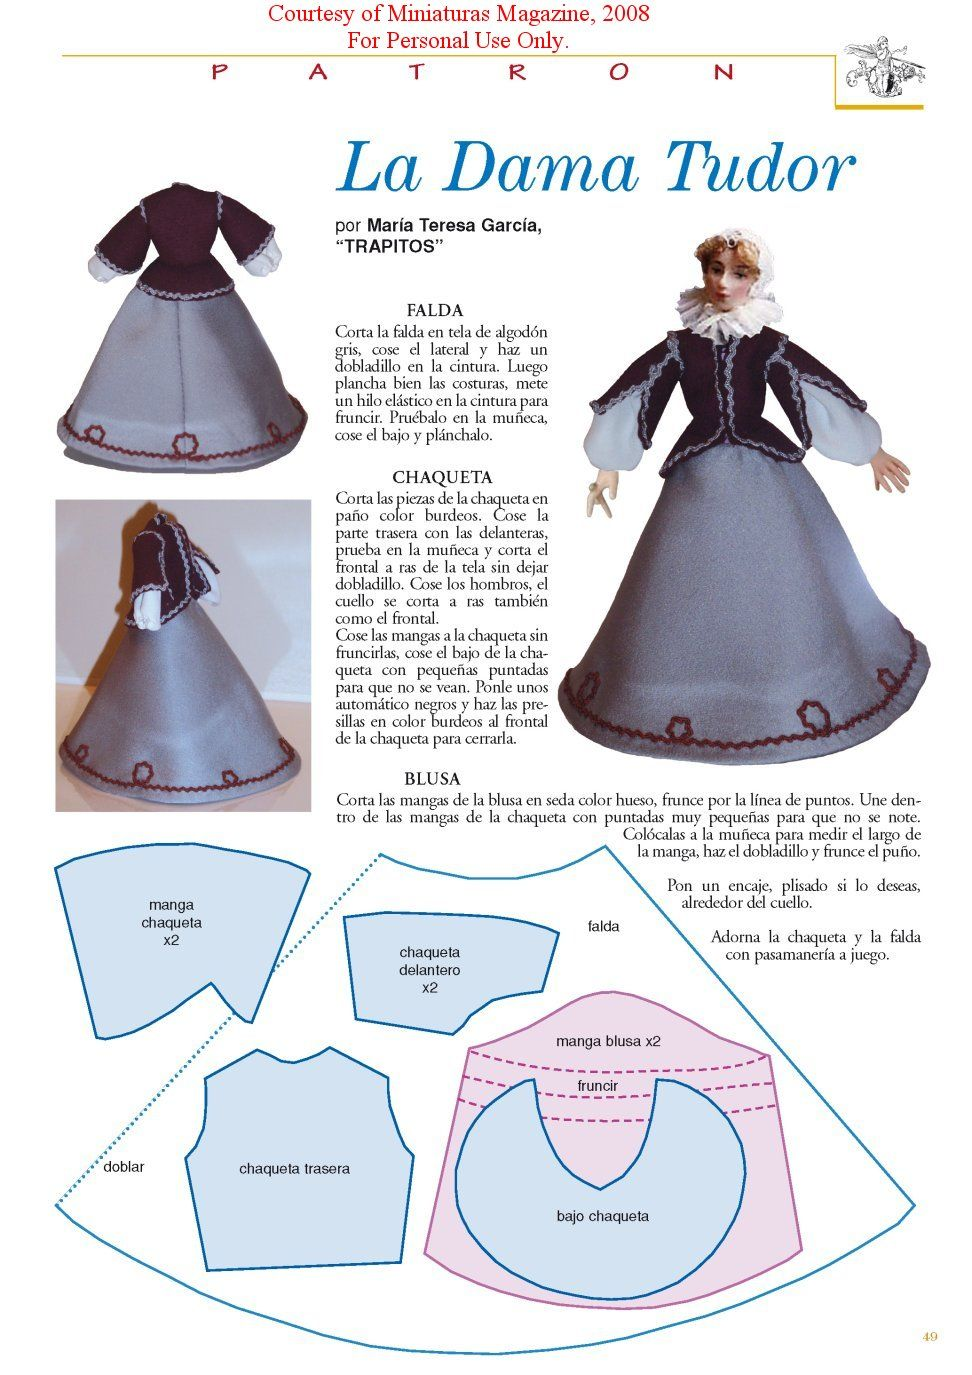 dress-pattern.jpg 972×1,375 pixels | Barbie doll | Pinterest ...